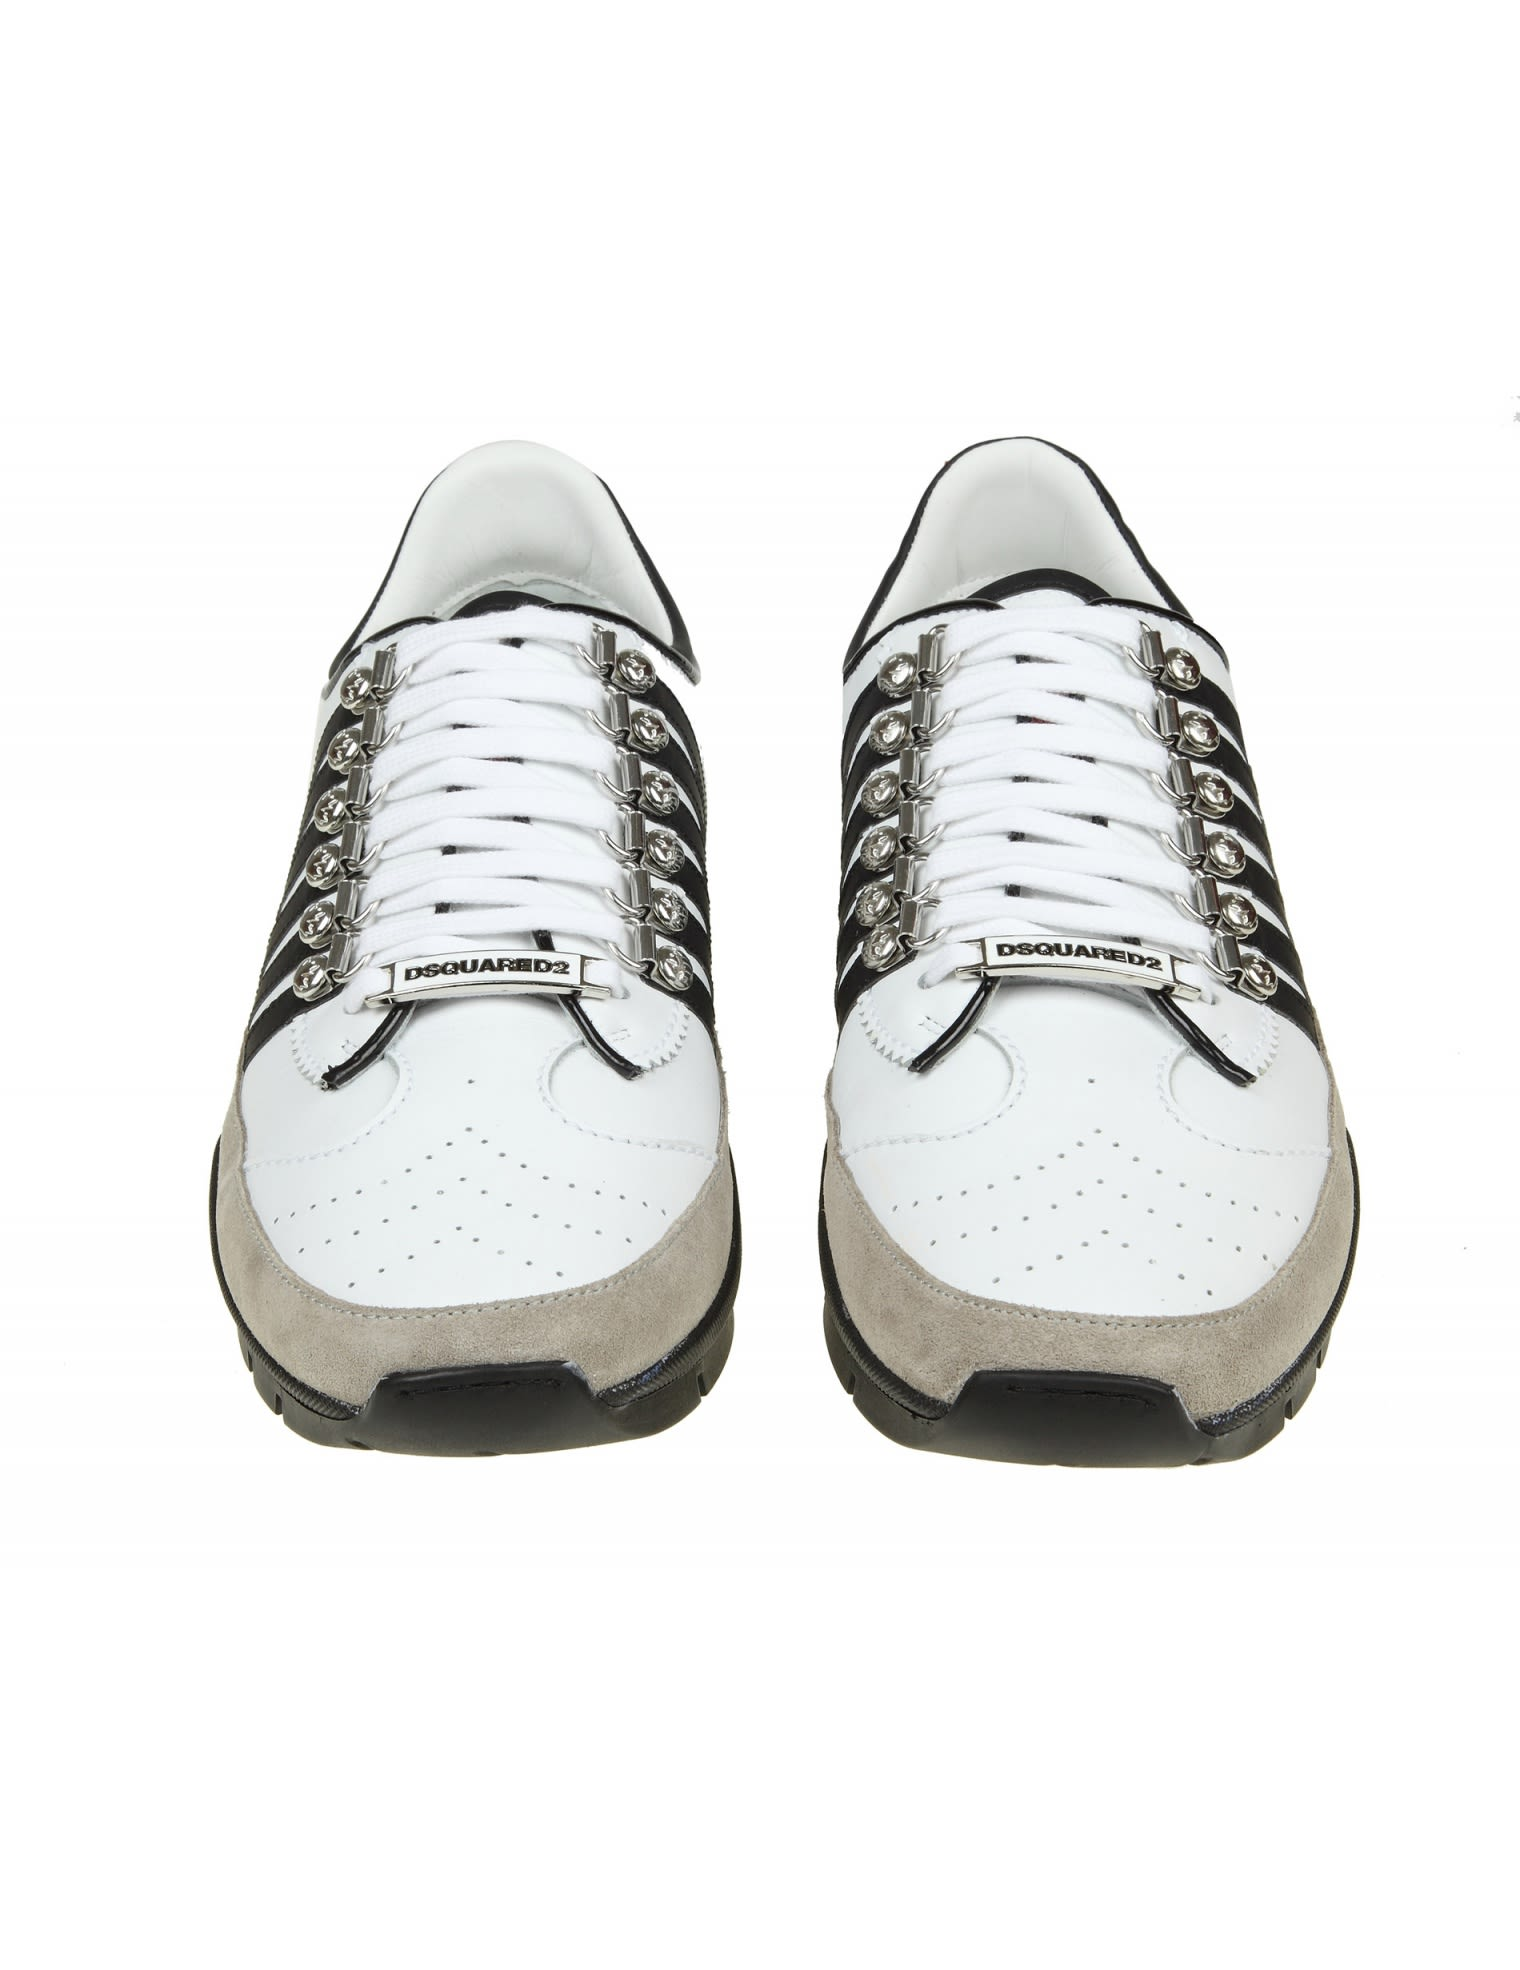 White Lace up 251 sneakers Dsquared2 yz0ArKtrr0